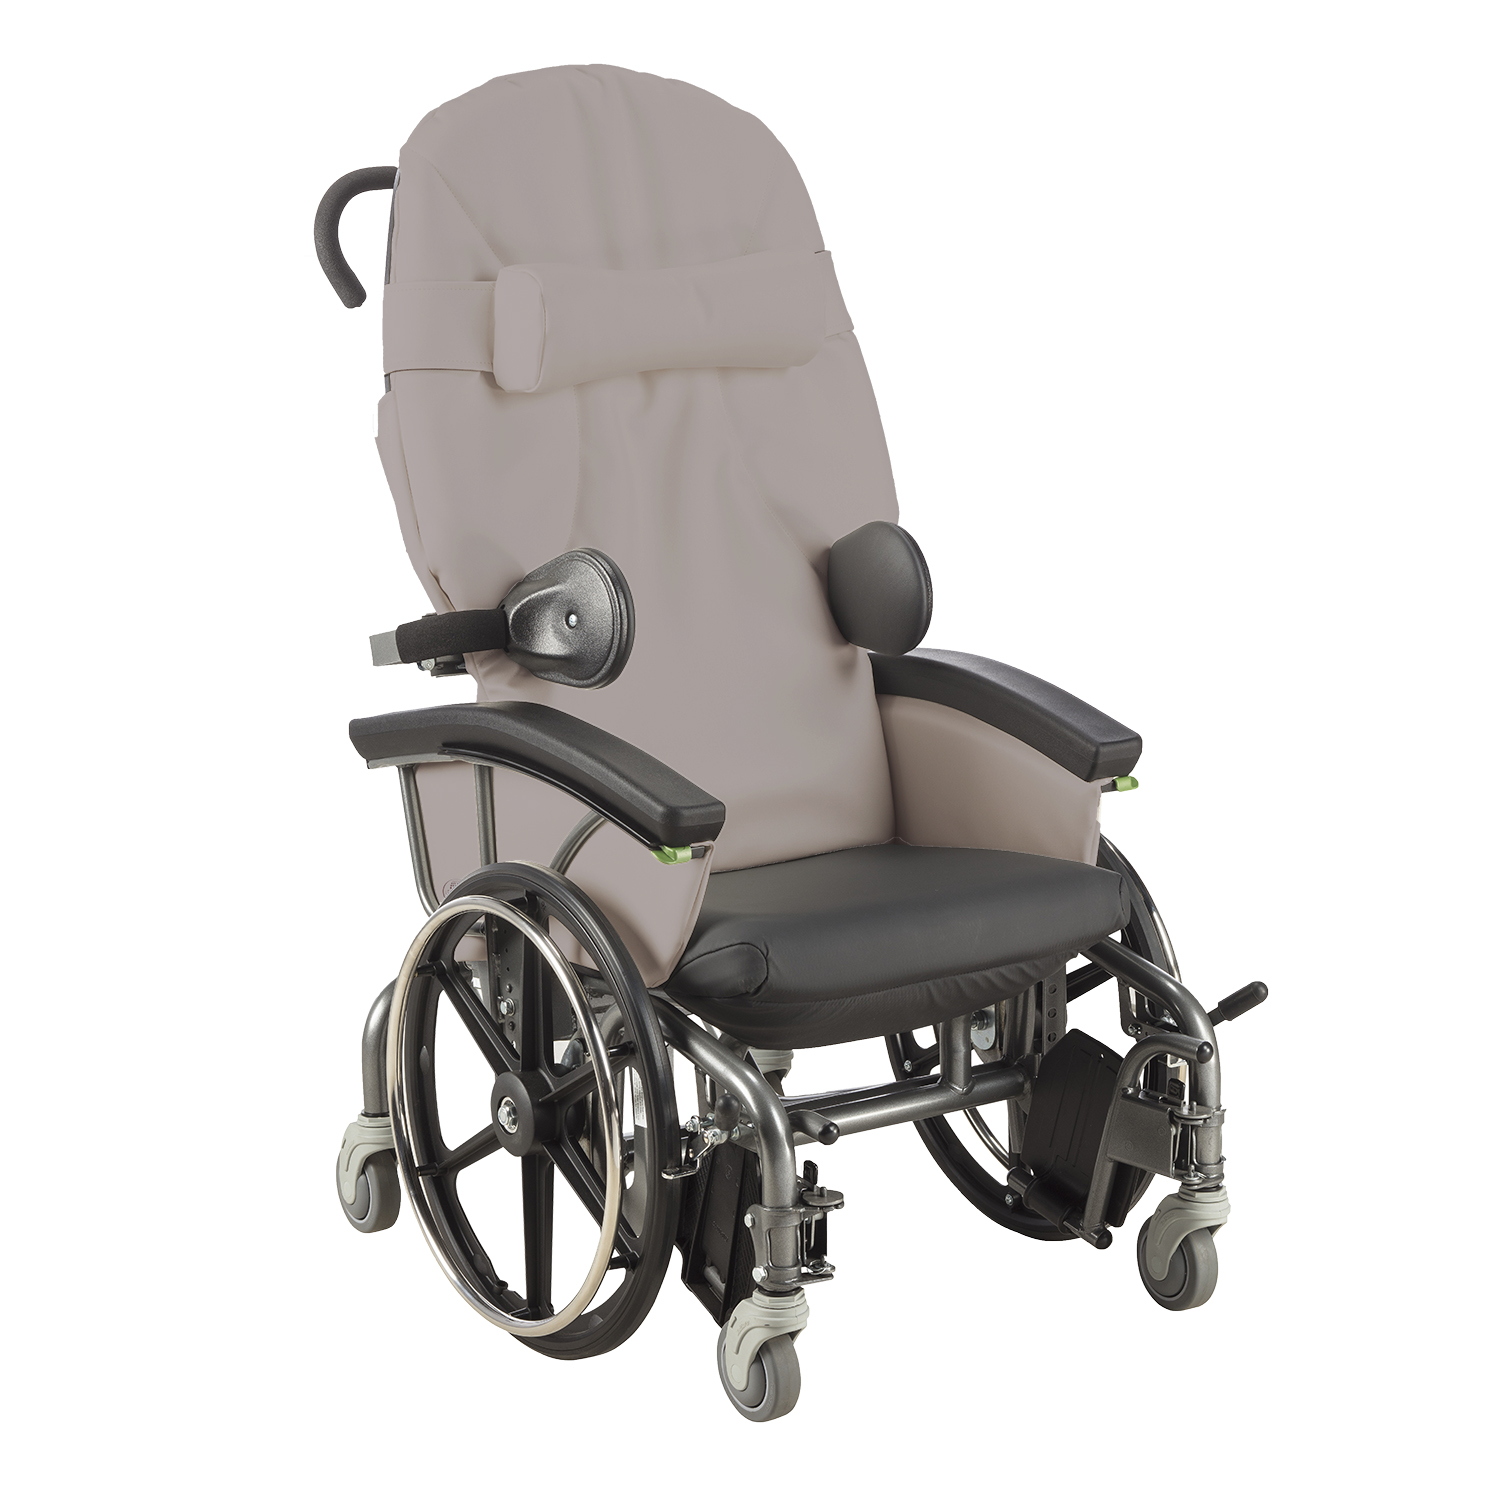 Evolution Chair Reduce Falls Increase Independent Mobility Evolution Mobility